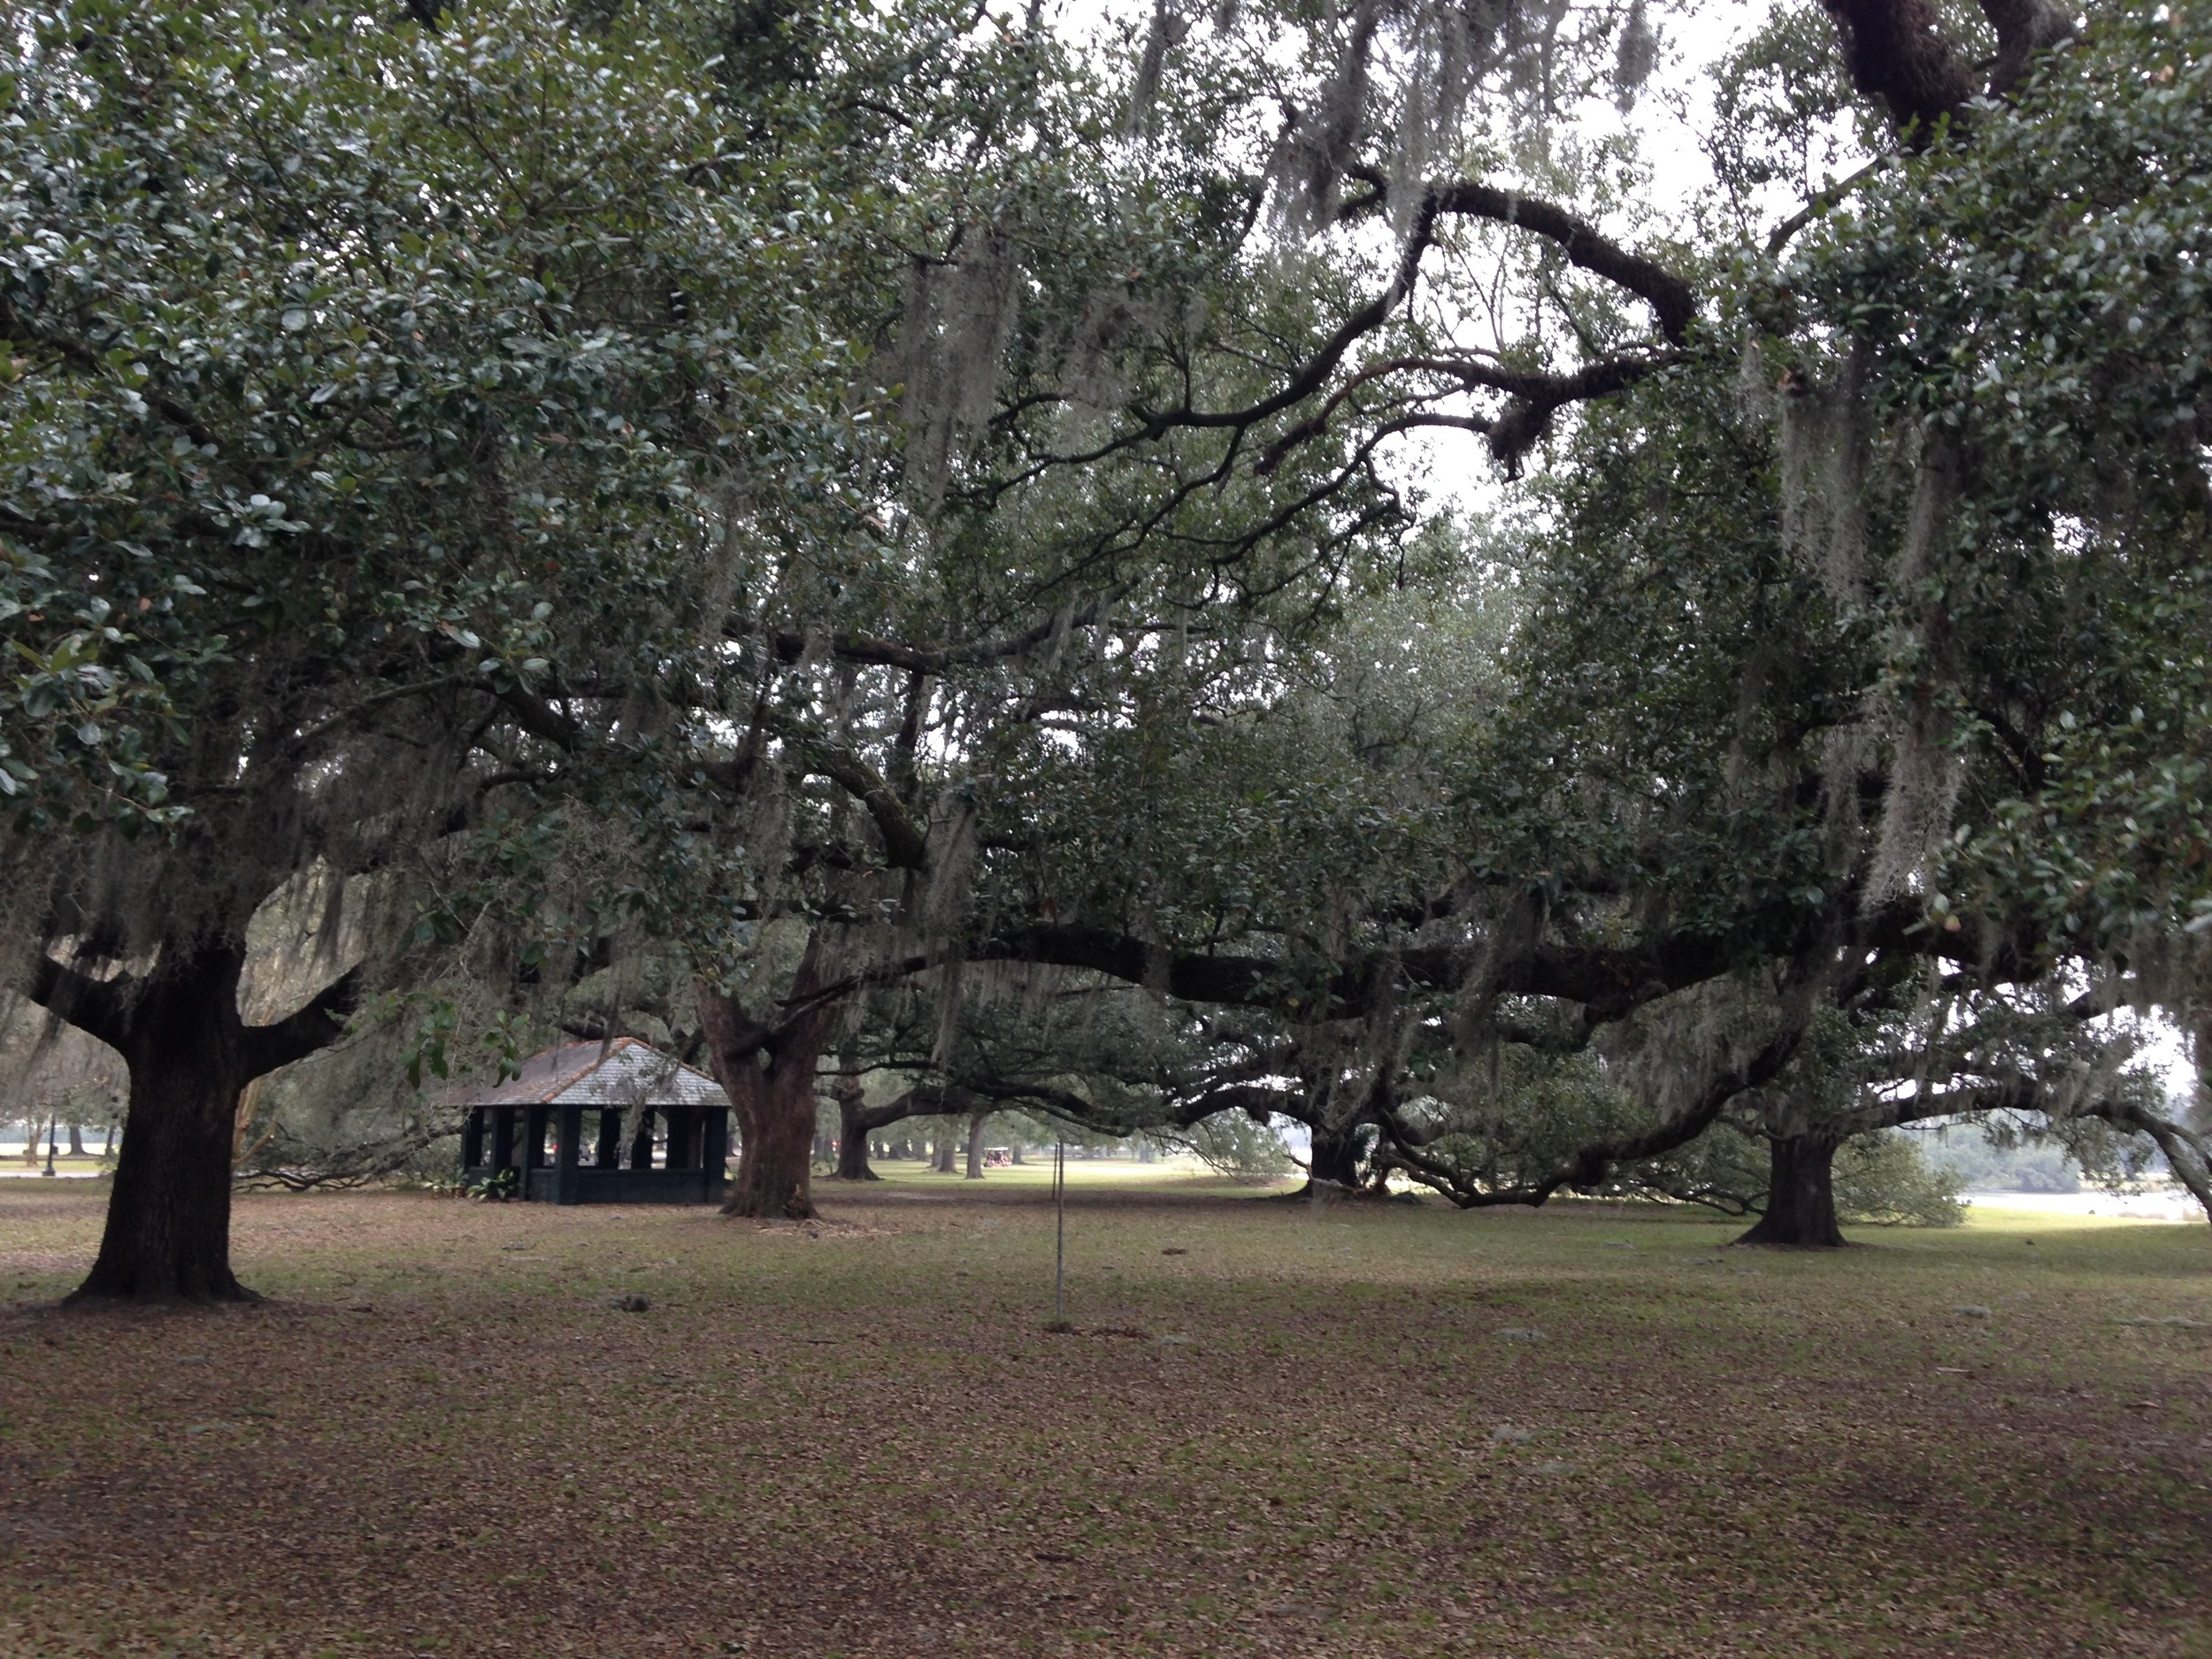 Where I go when I need a sense of peace, City Park in New Orleans.